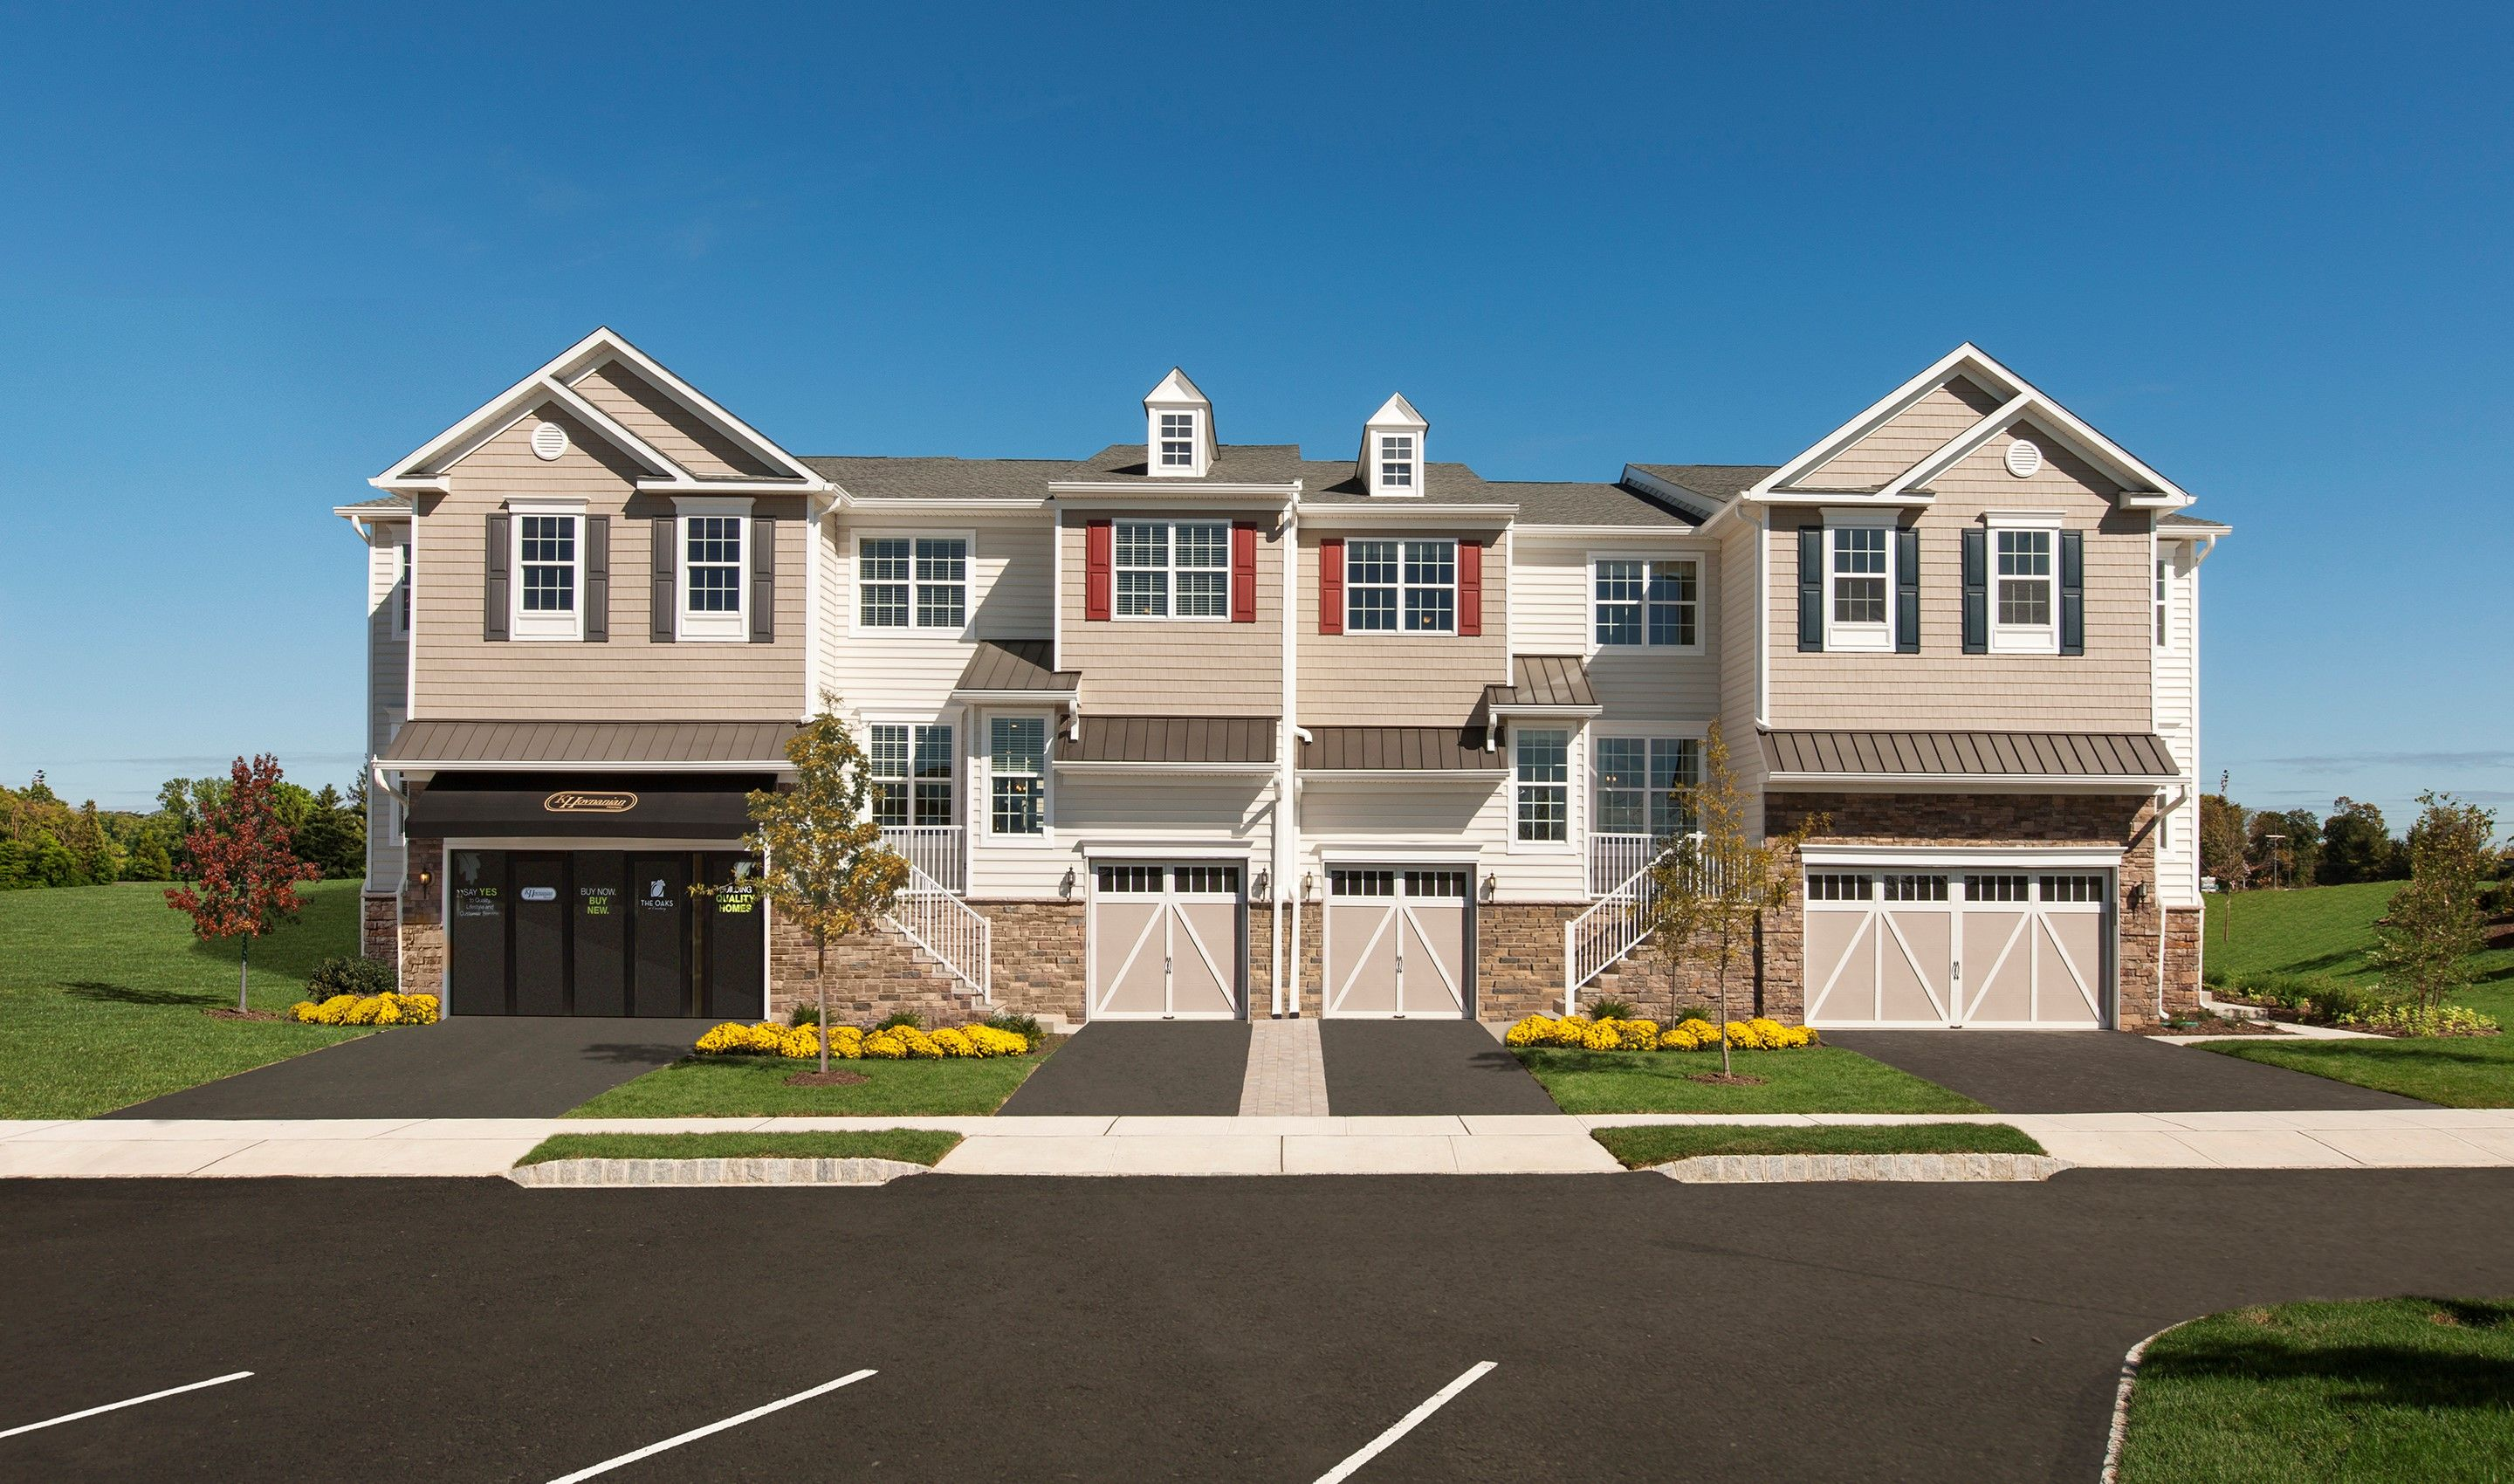 Soleil sotheby 39 s international realty for Home builders in south jersey